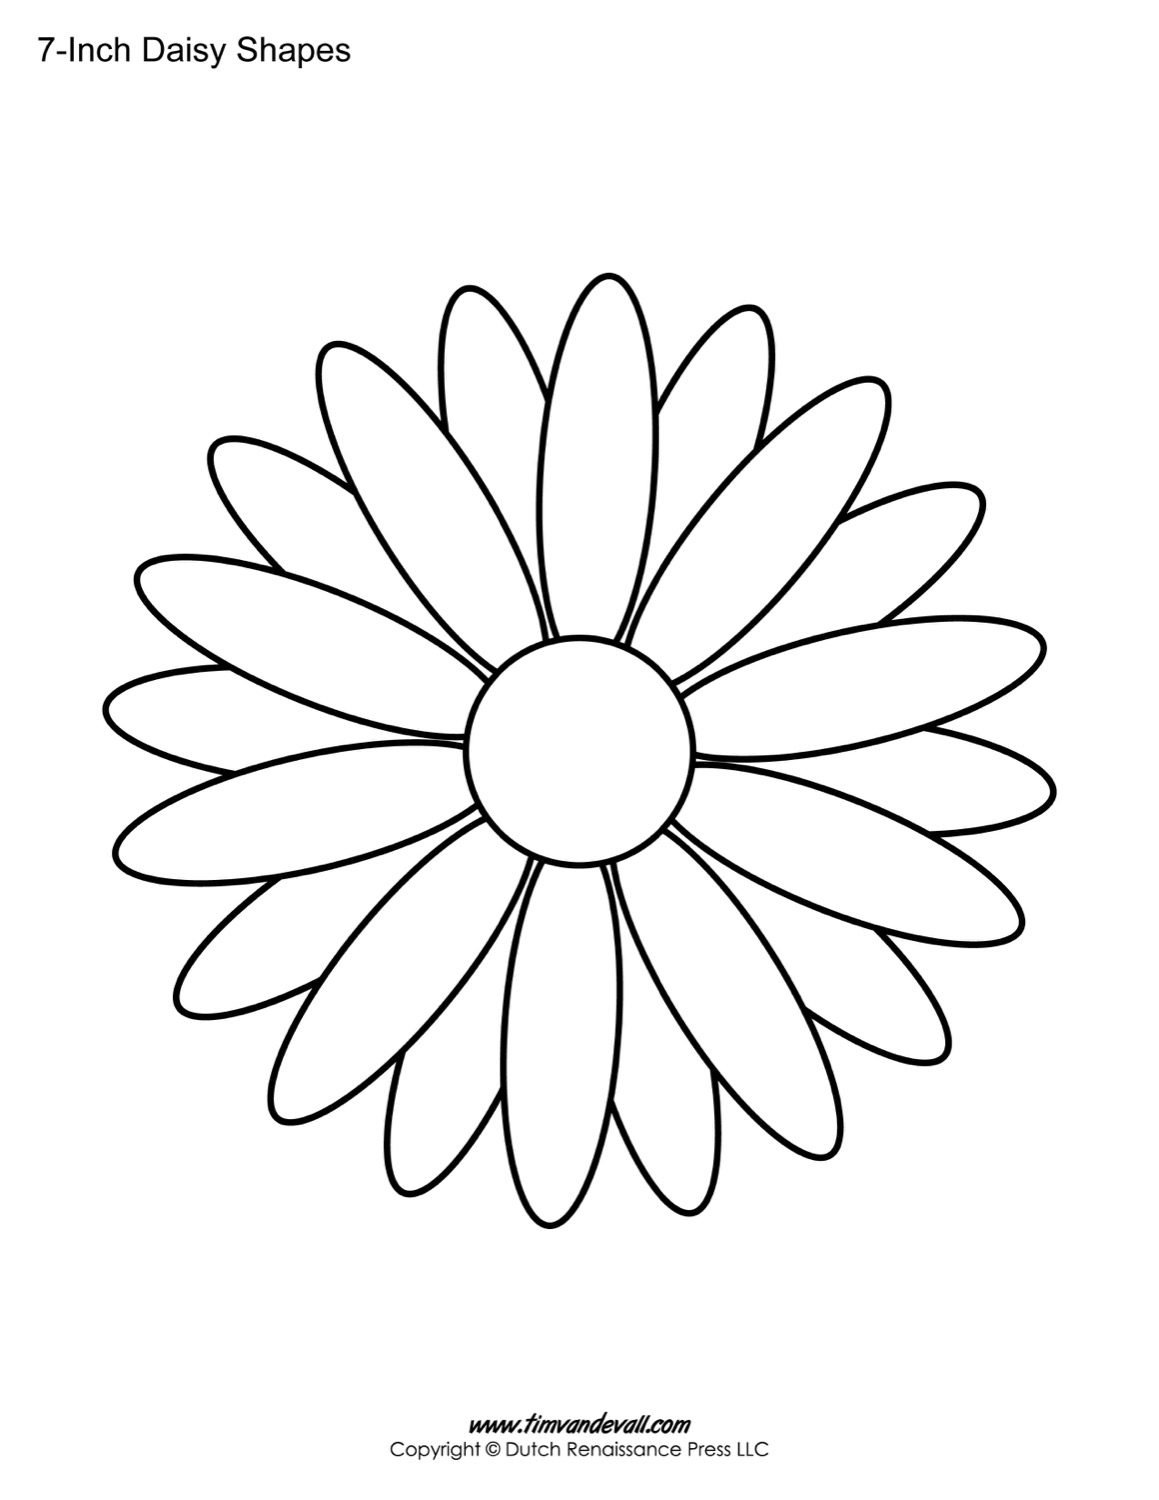 Free printable daisy templates daisy shape flower pdfs daisy outline pronofoot35fo Image collections